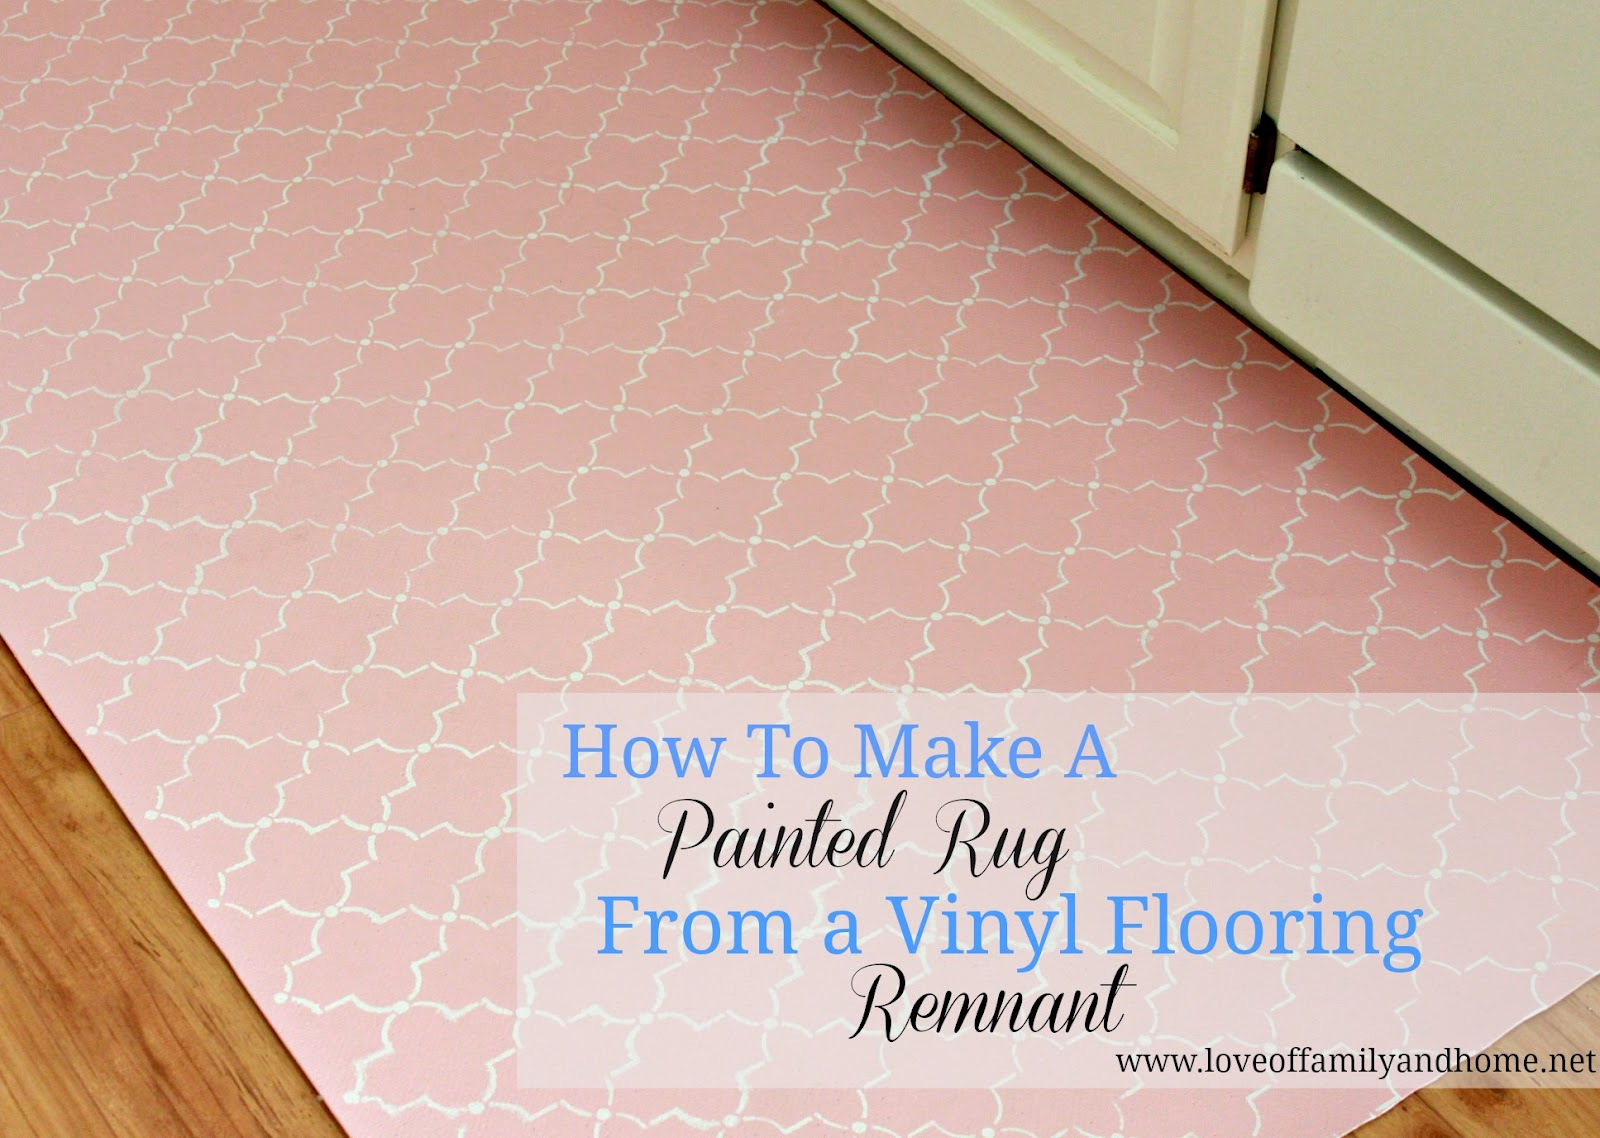 How To Paint A Rug Using Vinyl Flooring Love Of Family Home